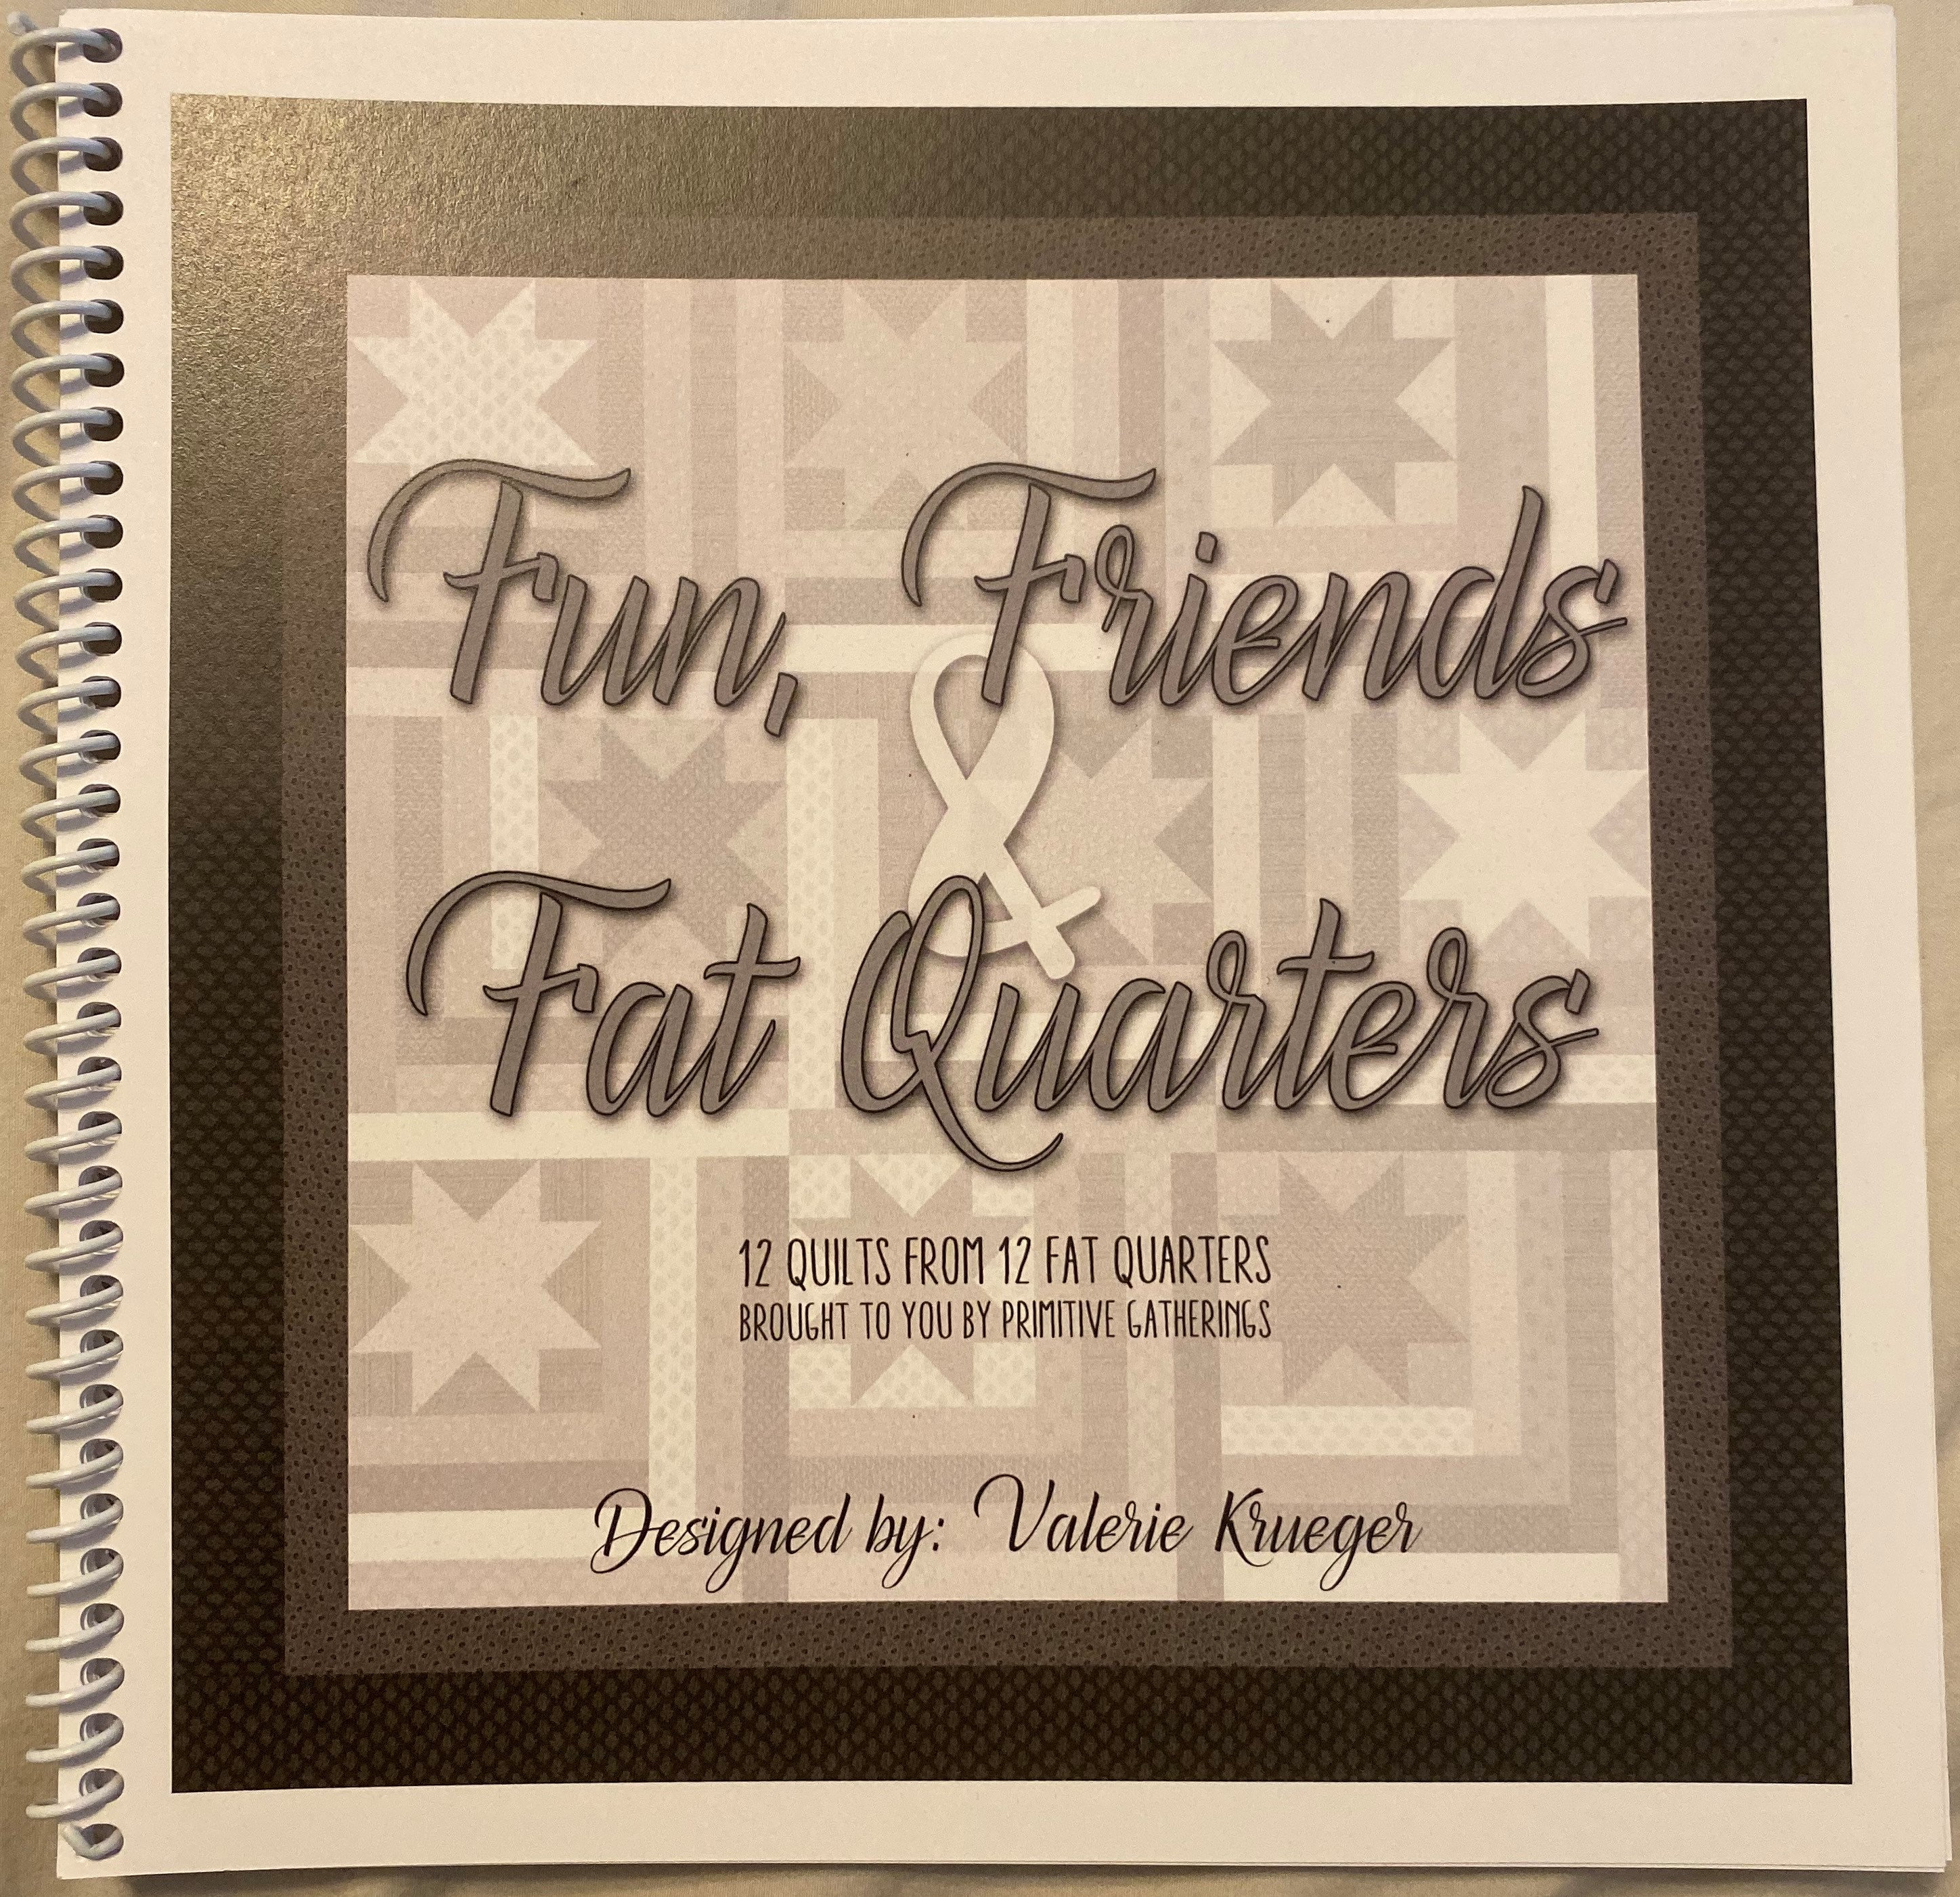 Fun, Friends, and Fat Quarters Quilt Pattern Book